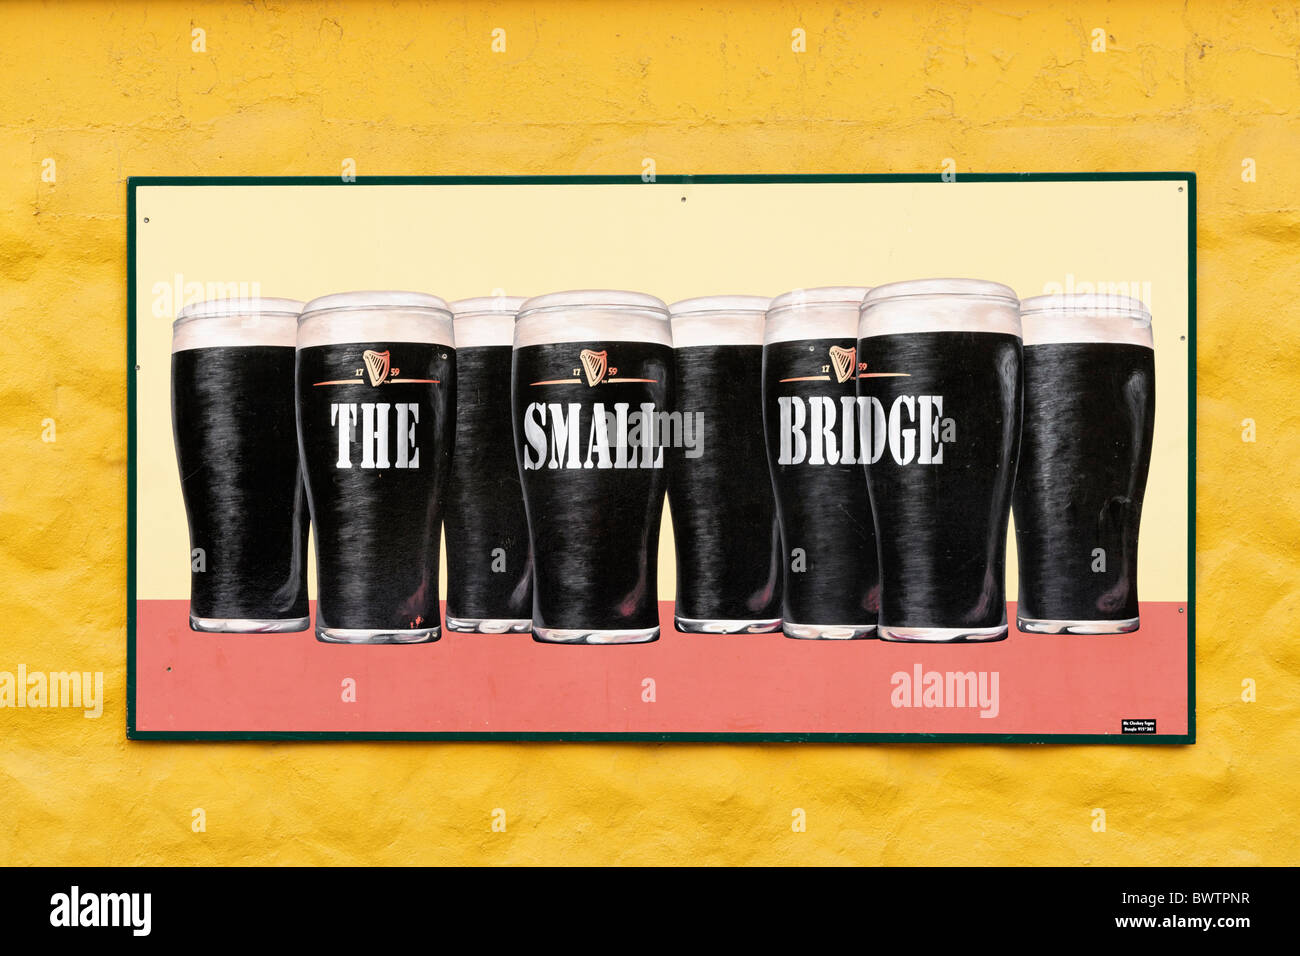 Guinness Poster Stock Photos & Guinness Poster Stock Images - Alamy